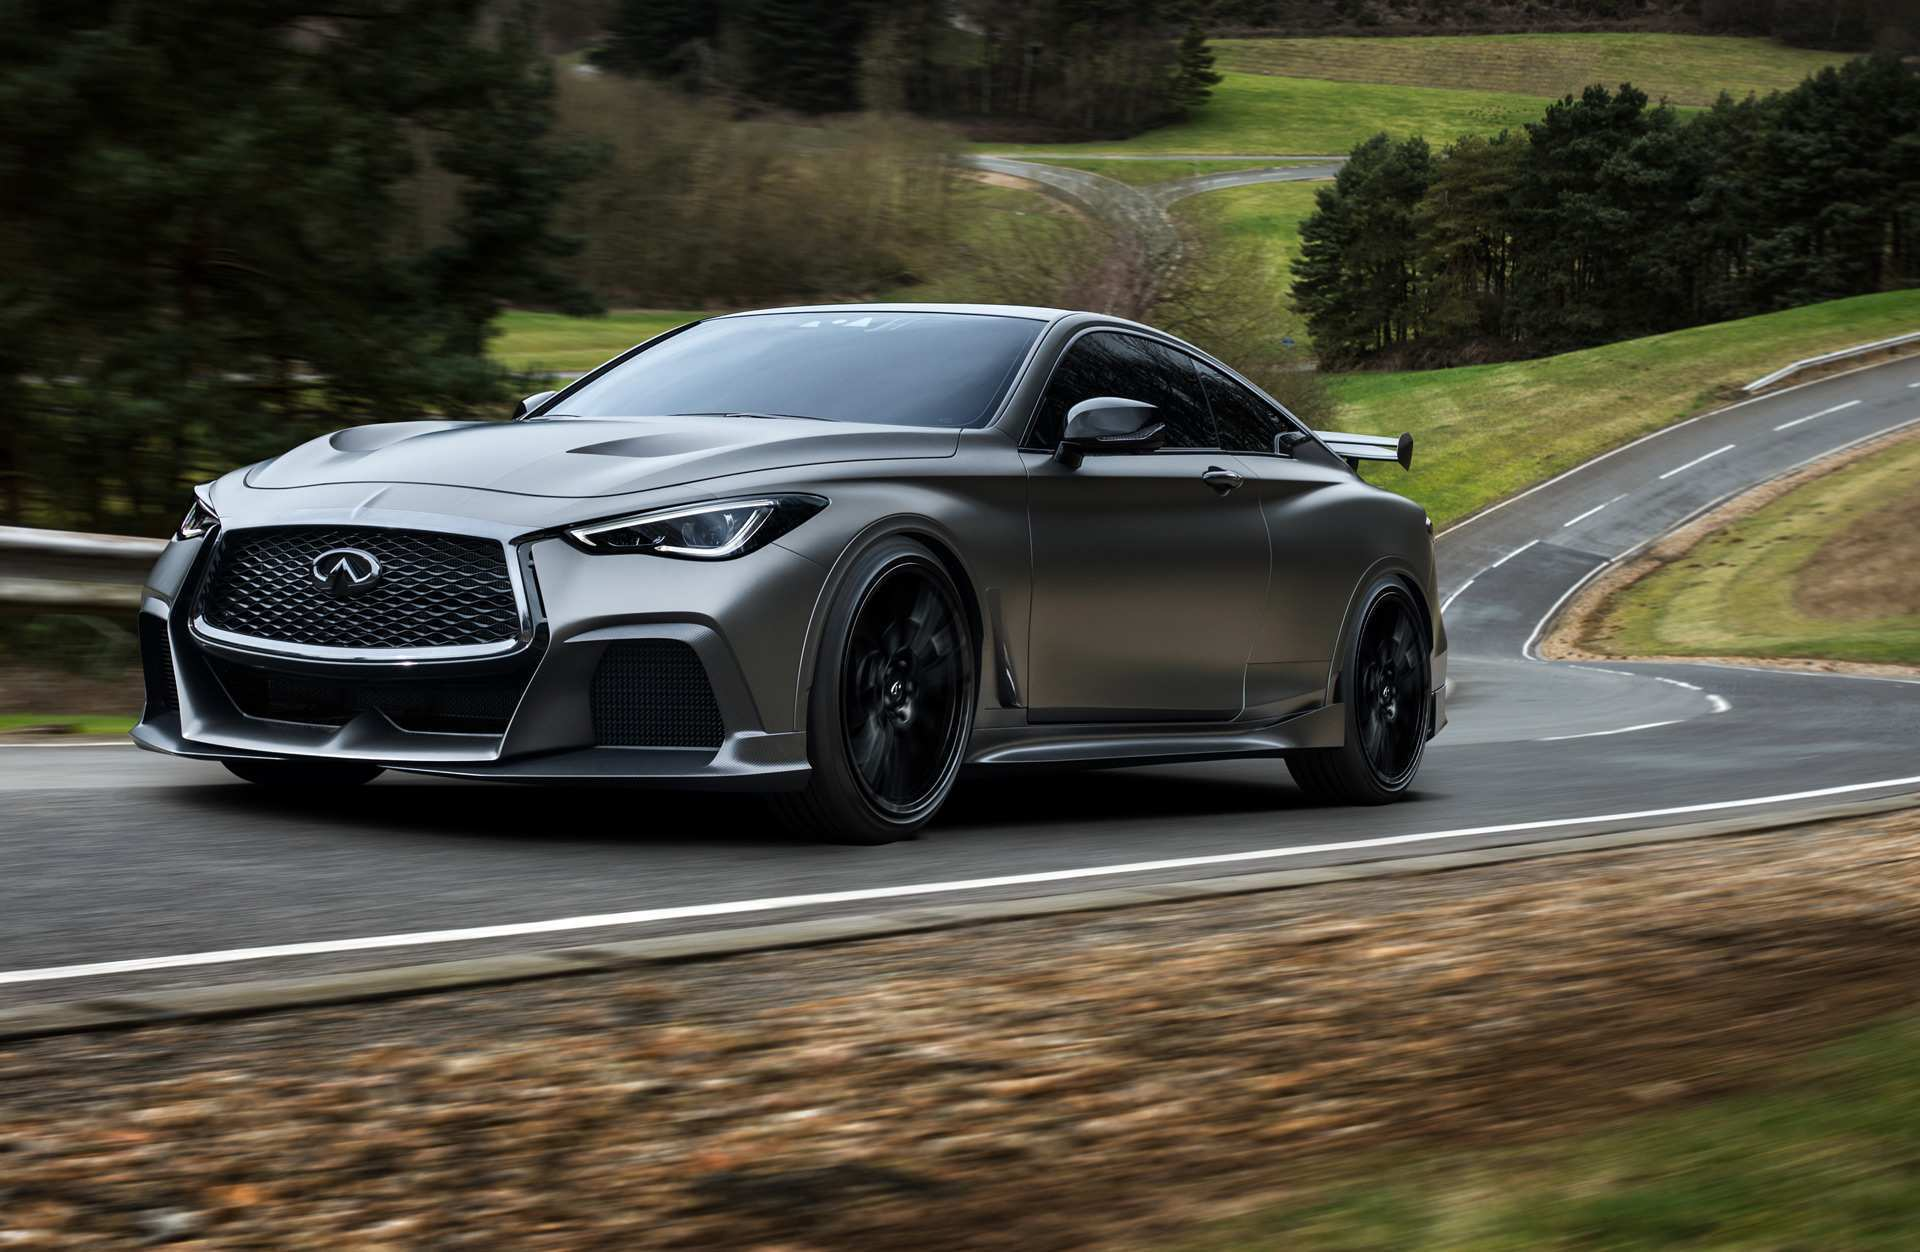 83 Best 2020 Infiniti Q60 Redesign And Review